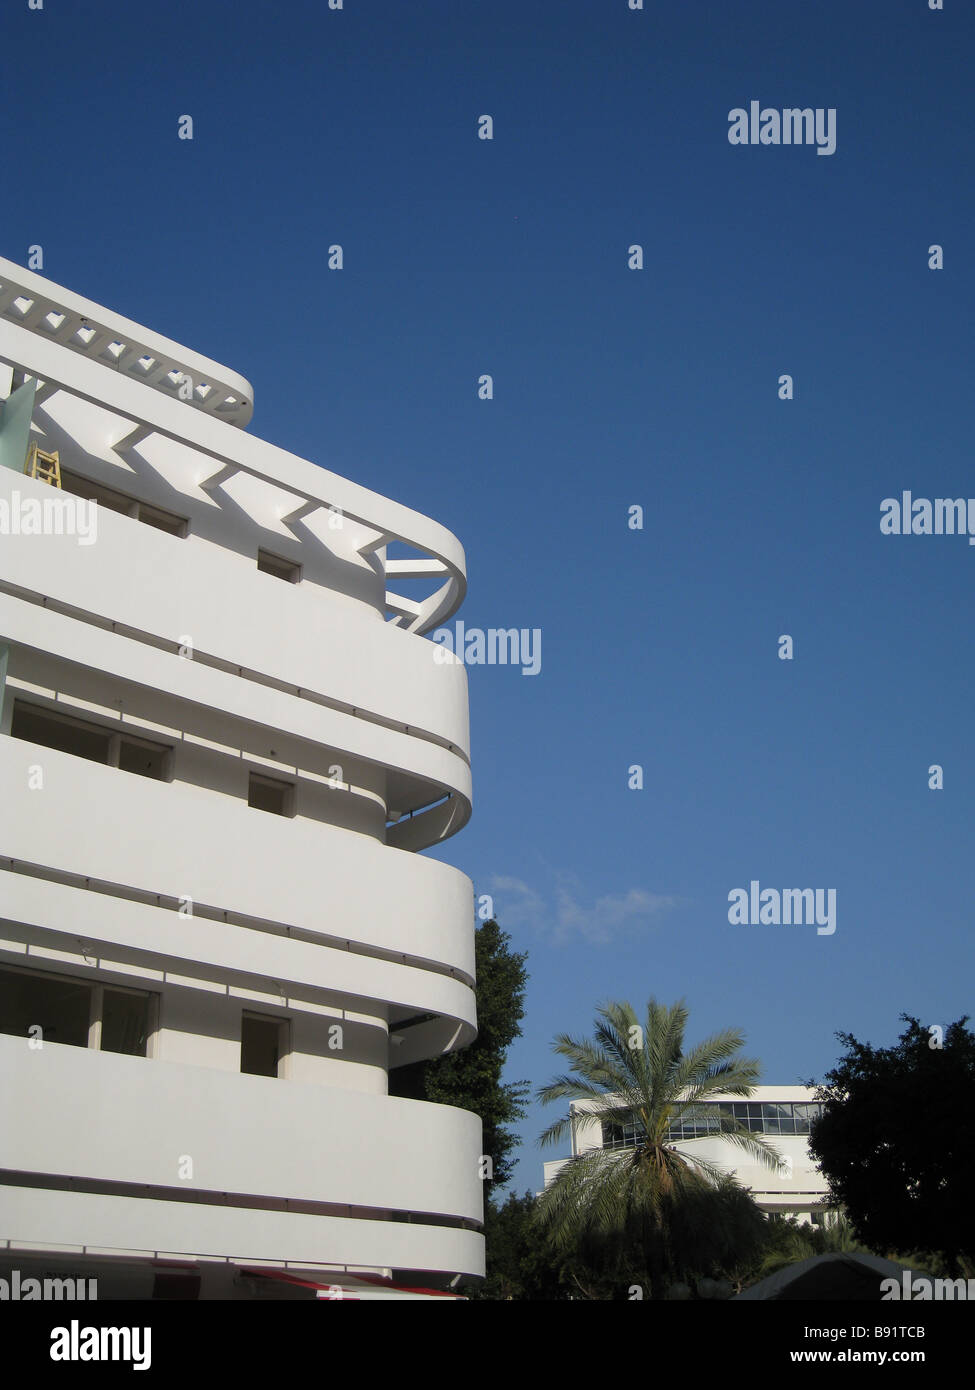 bauhaus architecture style in dizengoff square downtown tel aviv